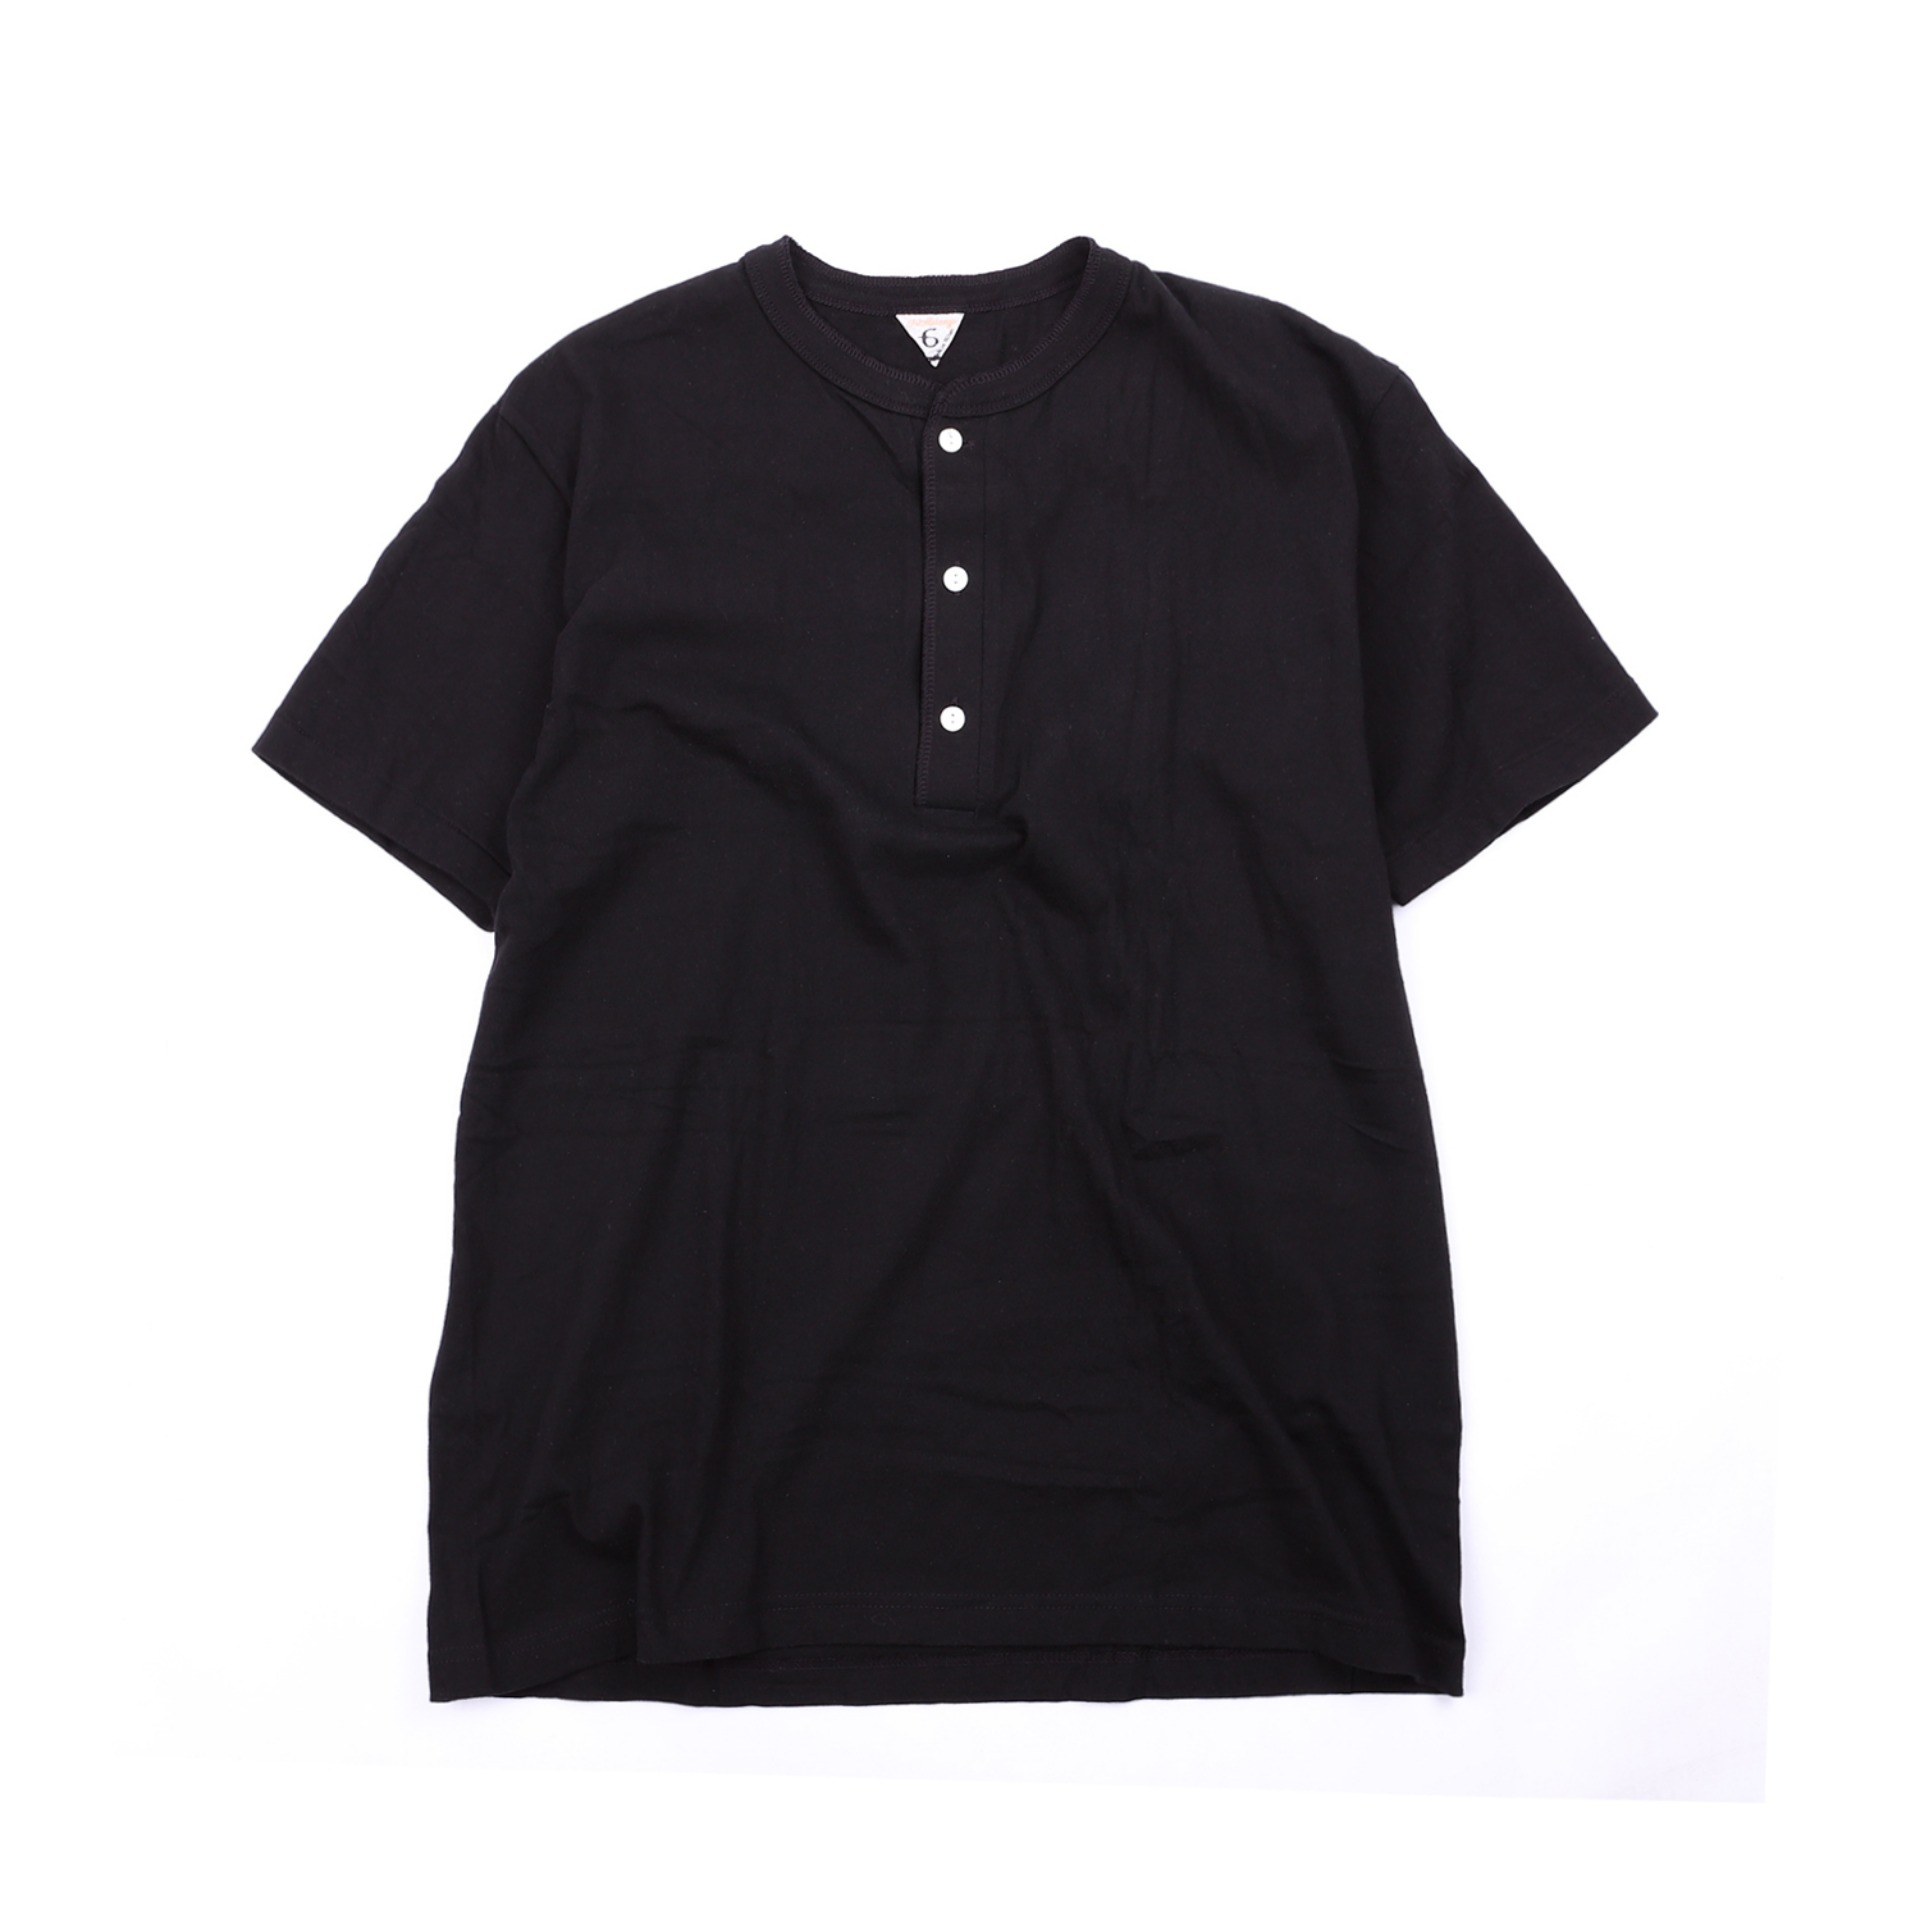 [HENRI]T-shirtShort Sleeve T-Shirt(Black)